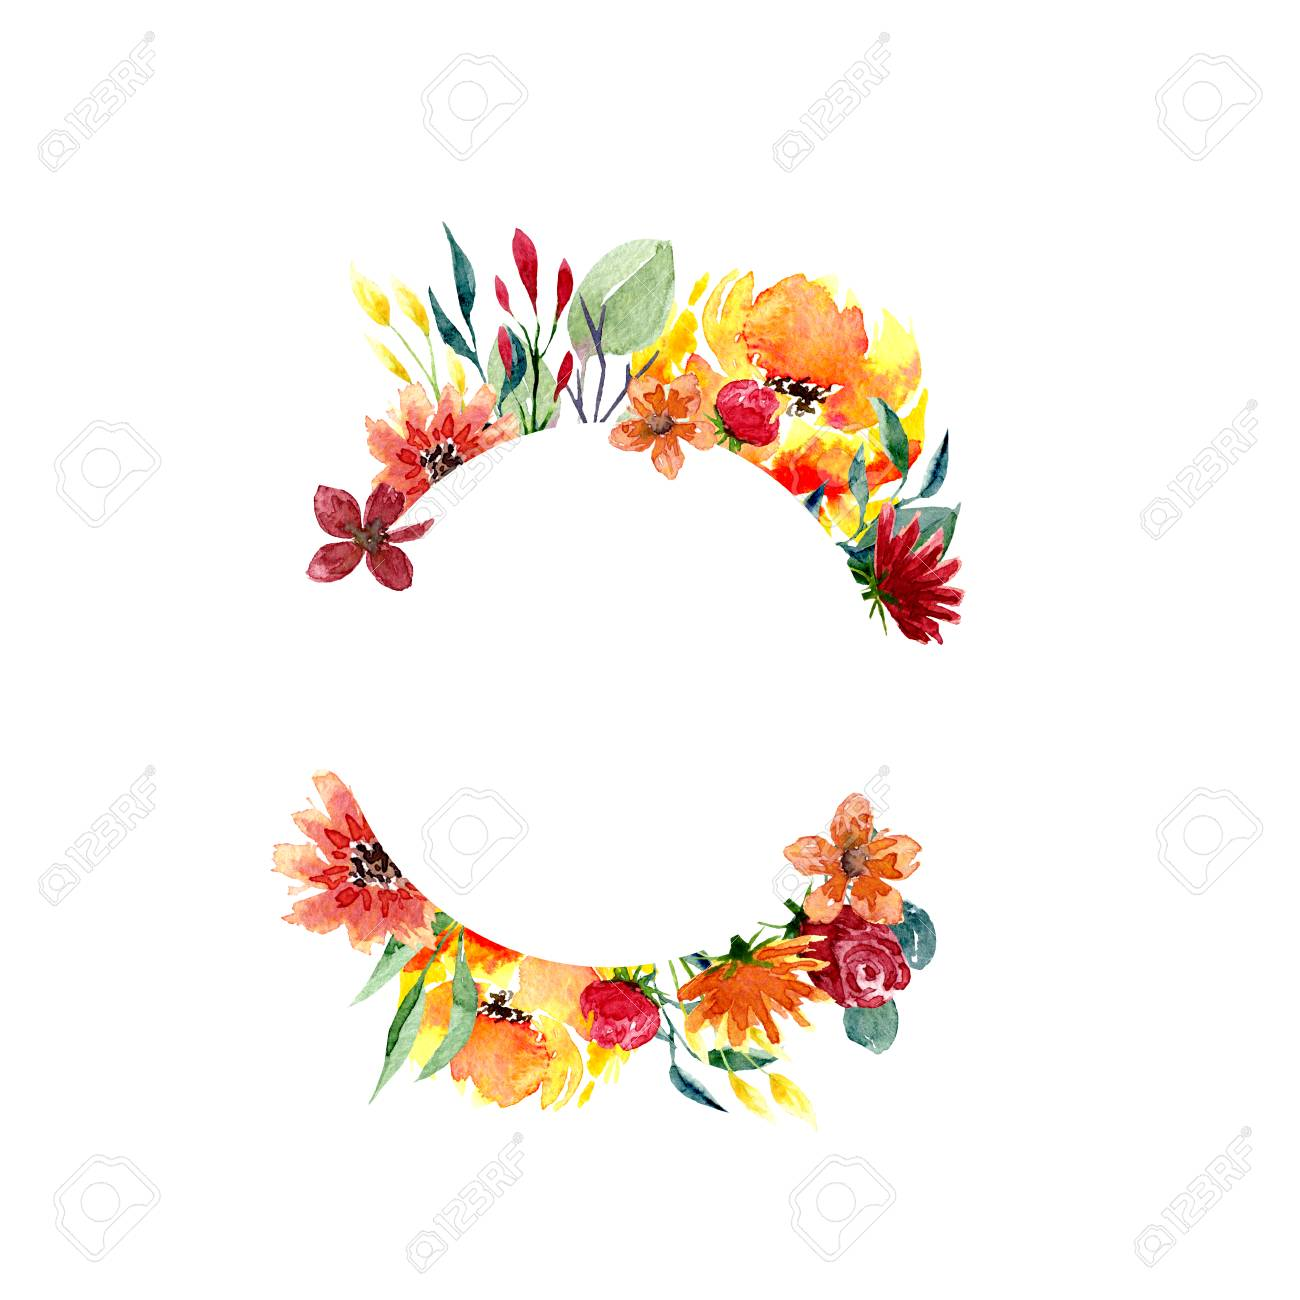 Watercolor Floral Frame Background With Fresh Foliage Bright